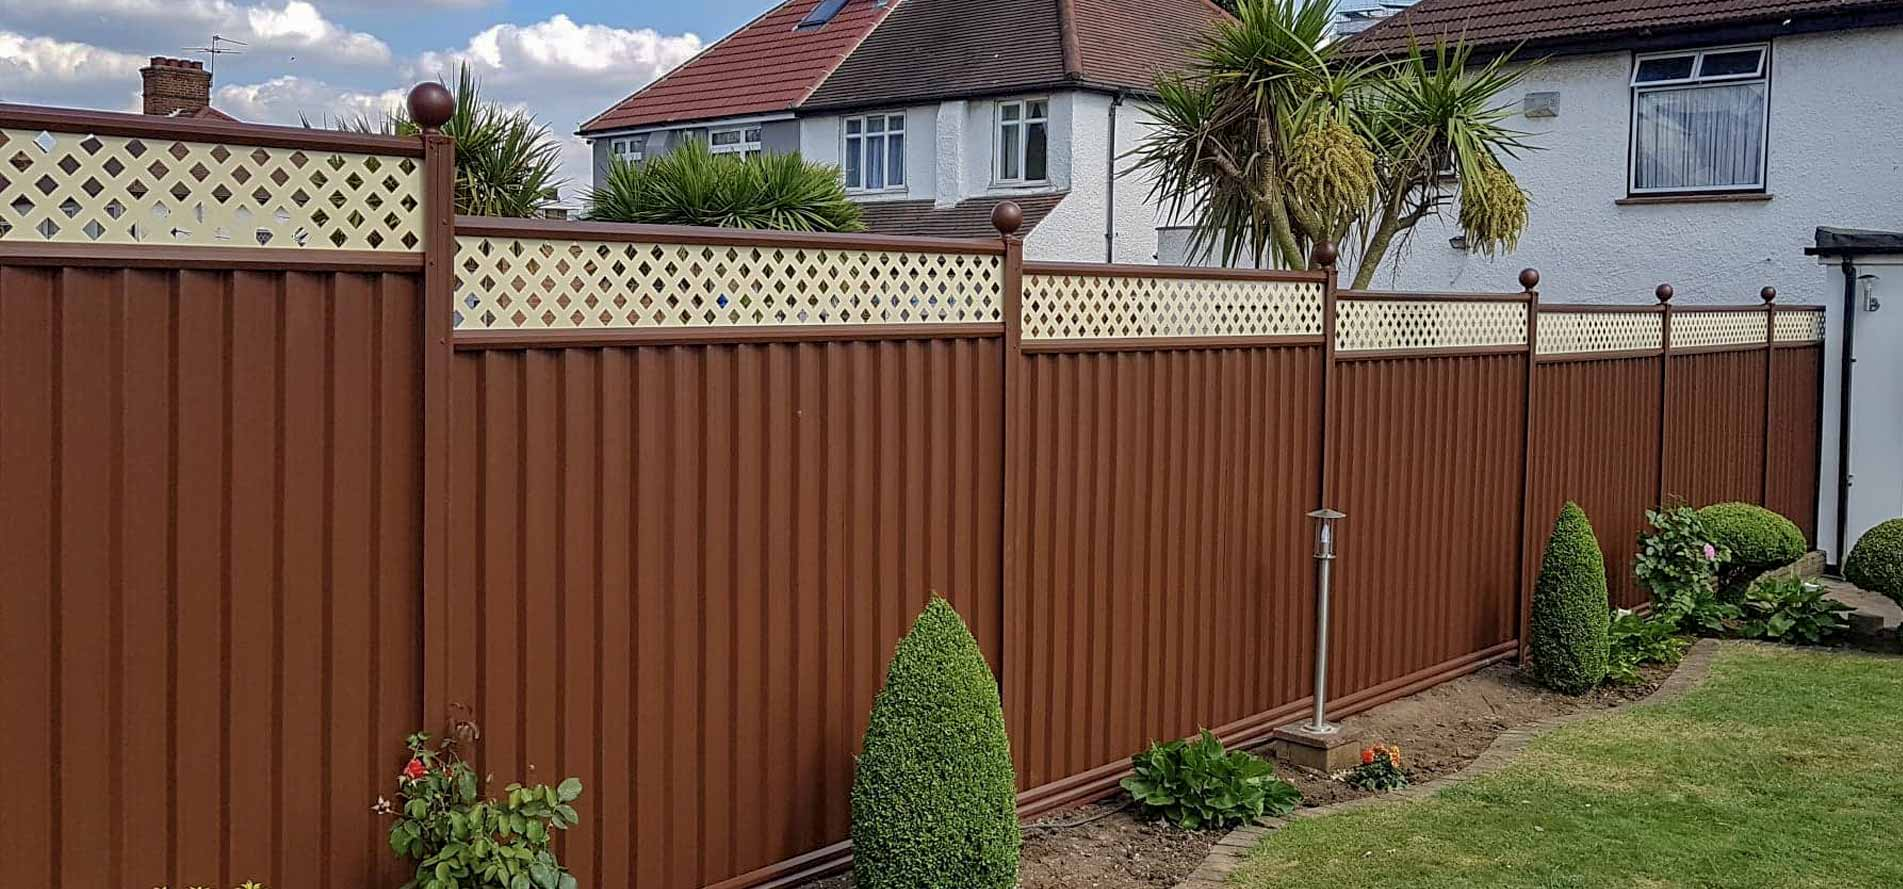 Metal garden fencing in March